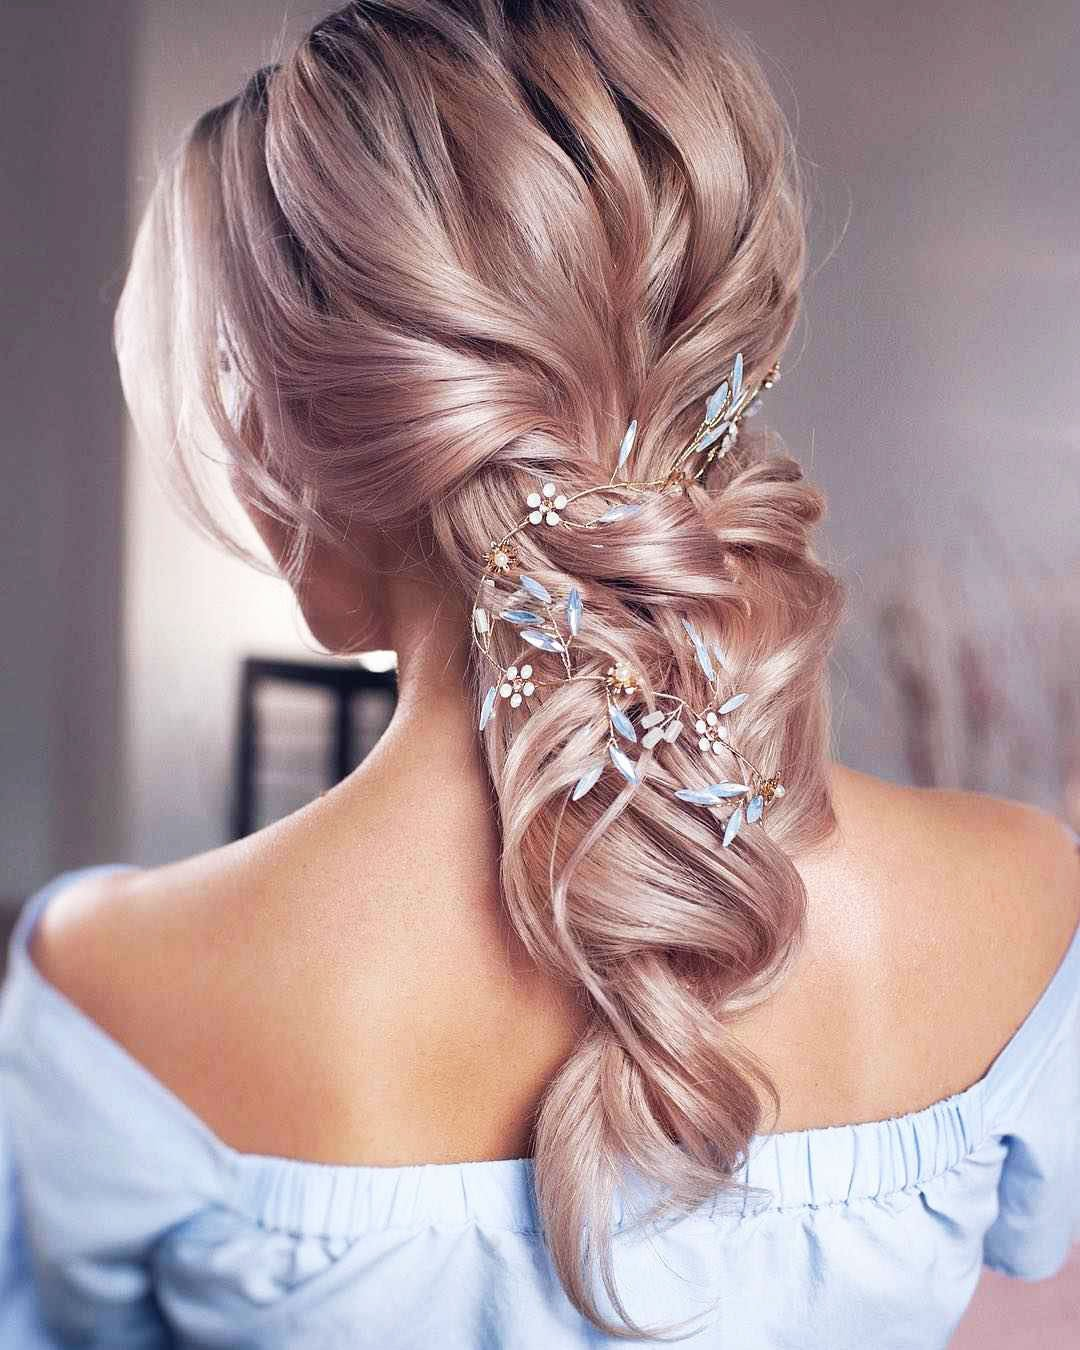 Hairstyles for white hair